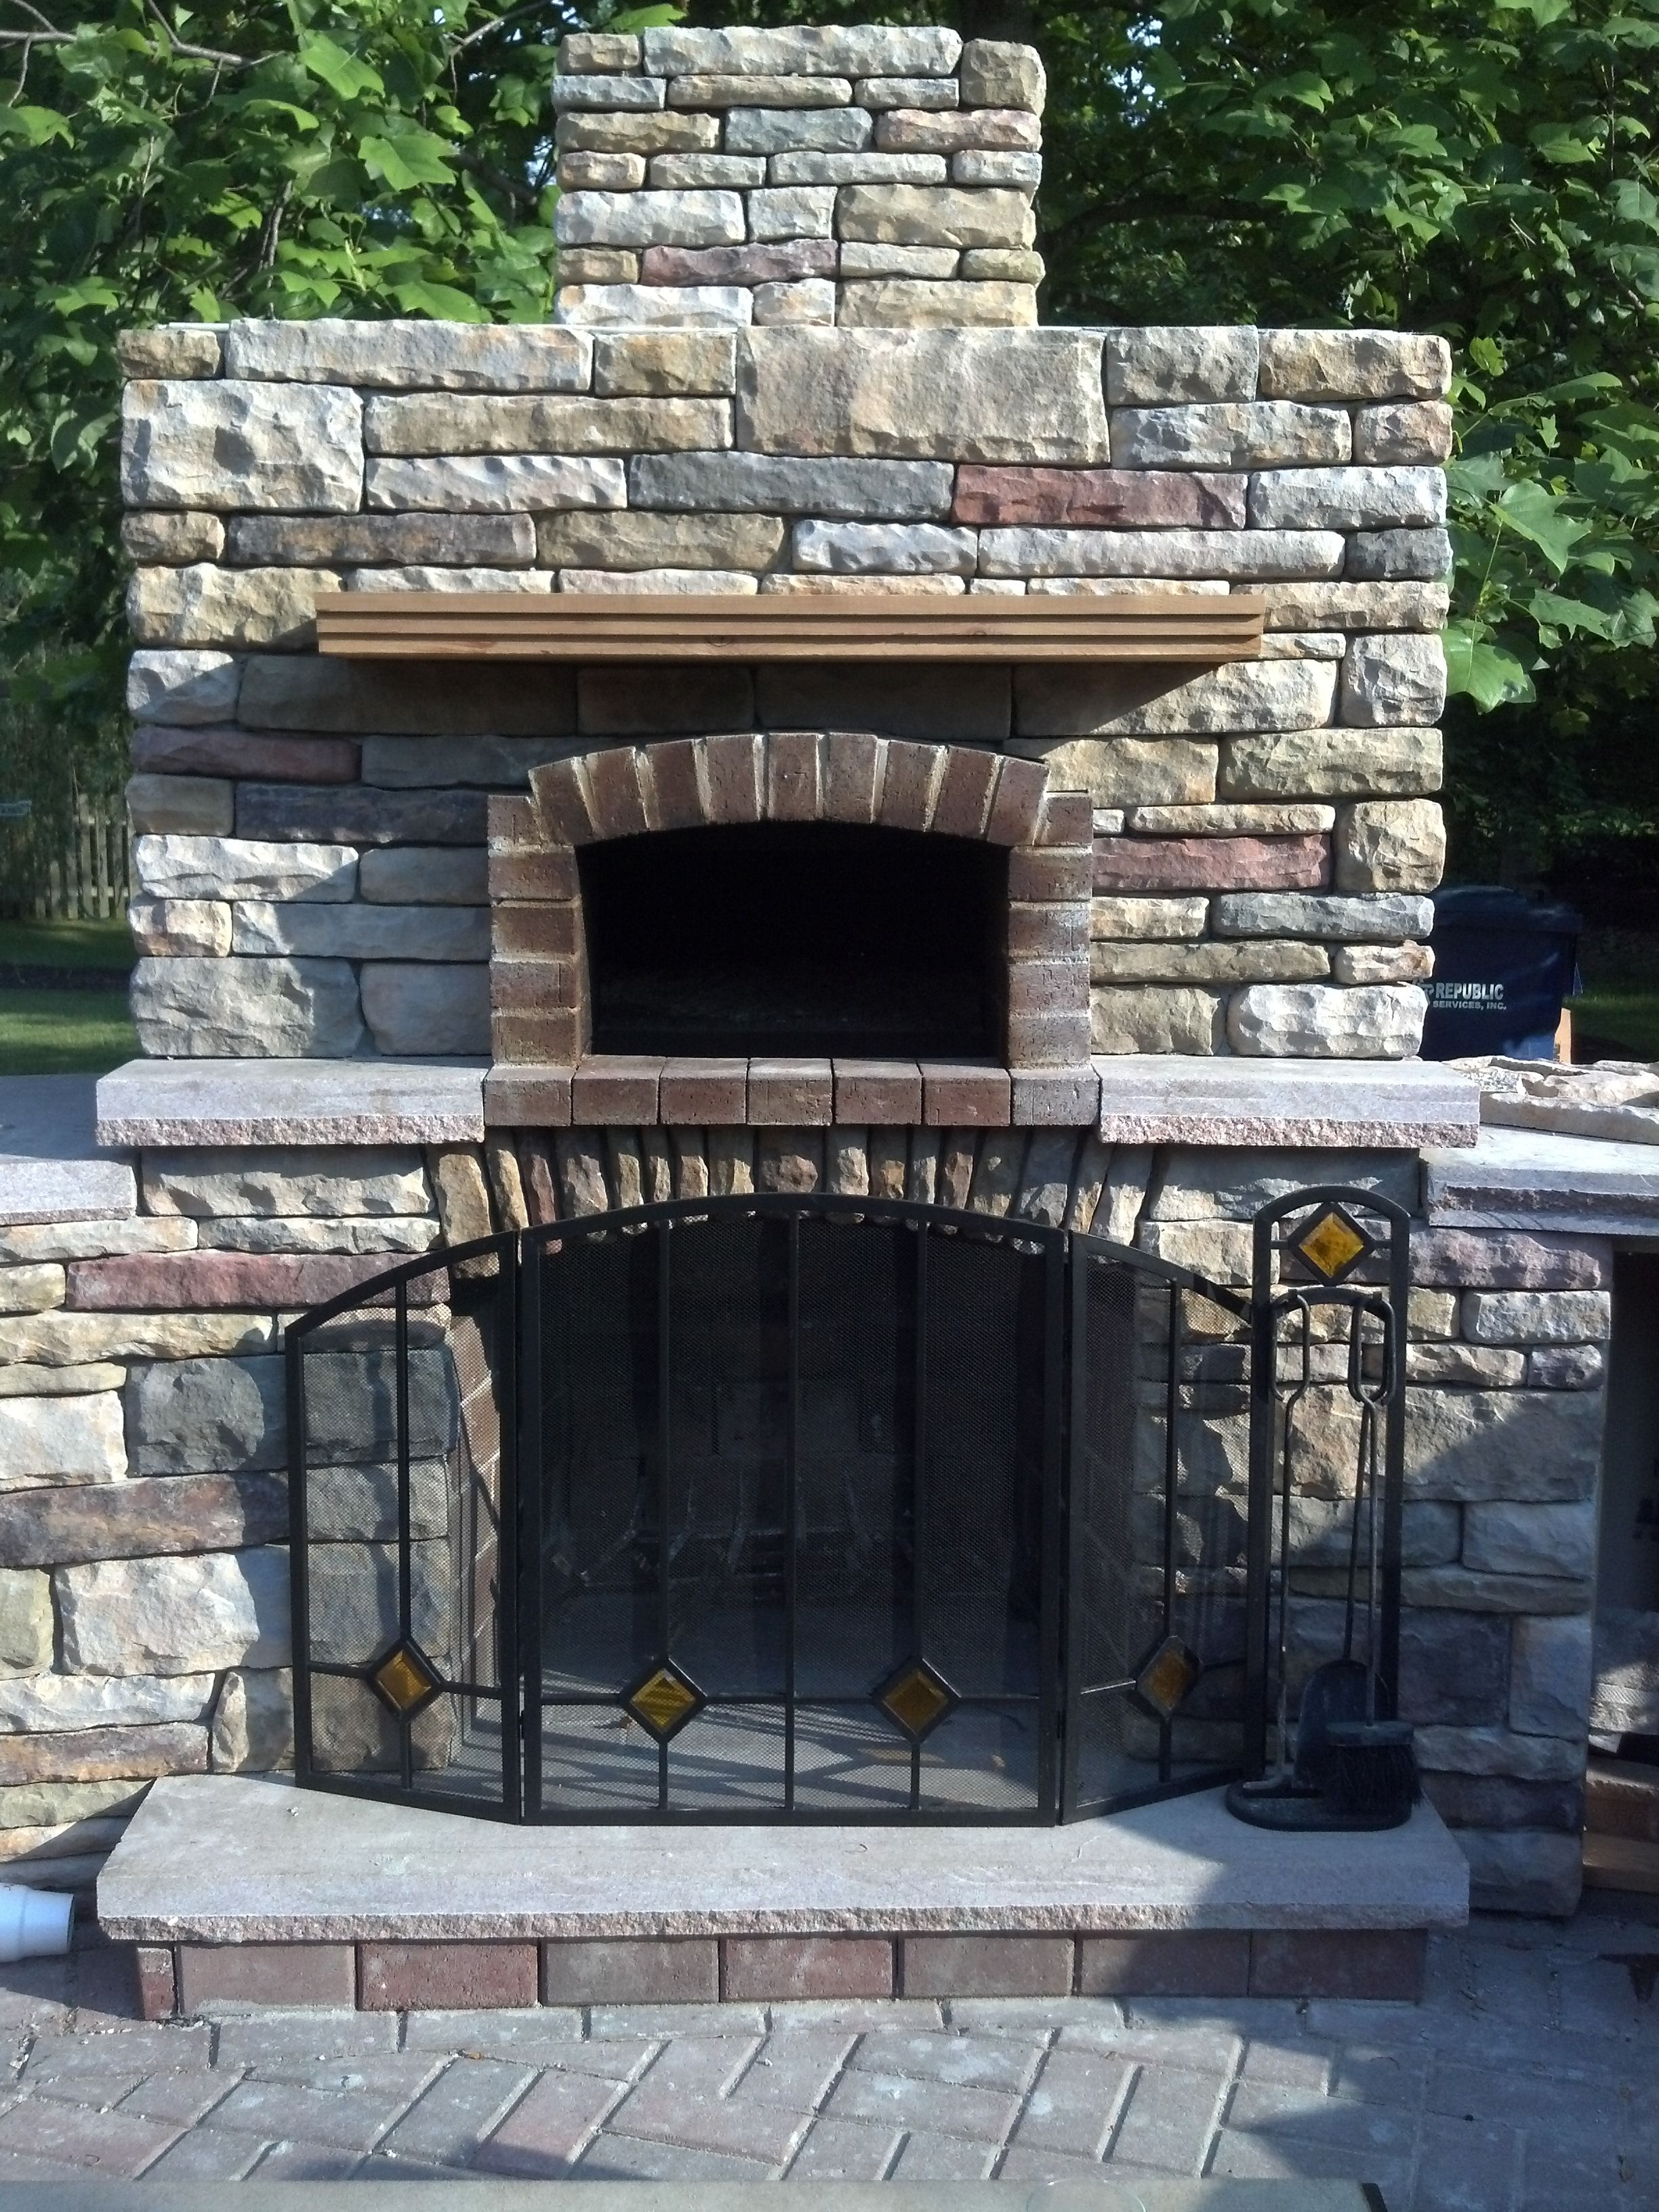 capow 39 s outdoor office outdoor fireplace and outdoor pizza oven roundhouse pinterest. Black Bedroom Furniture Sets. Home Design Ideas